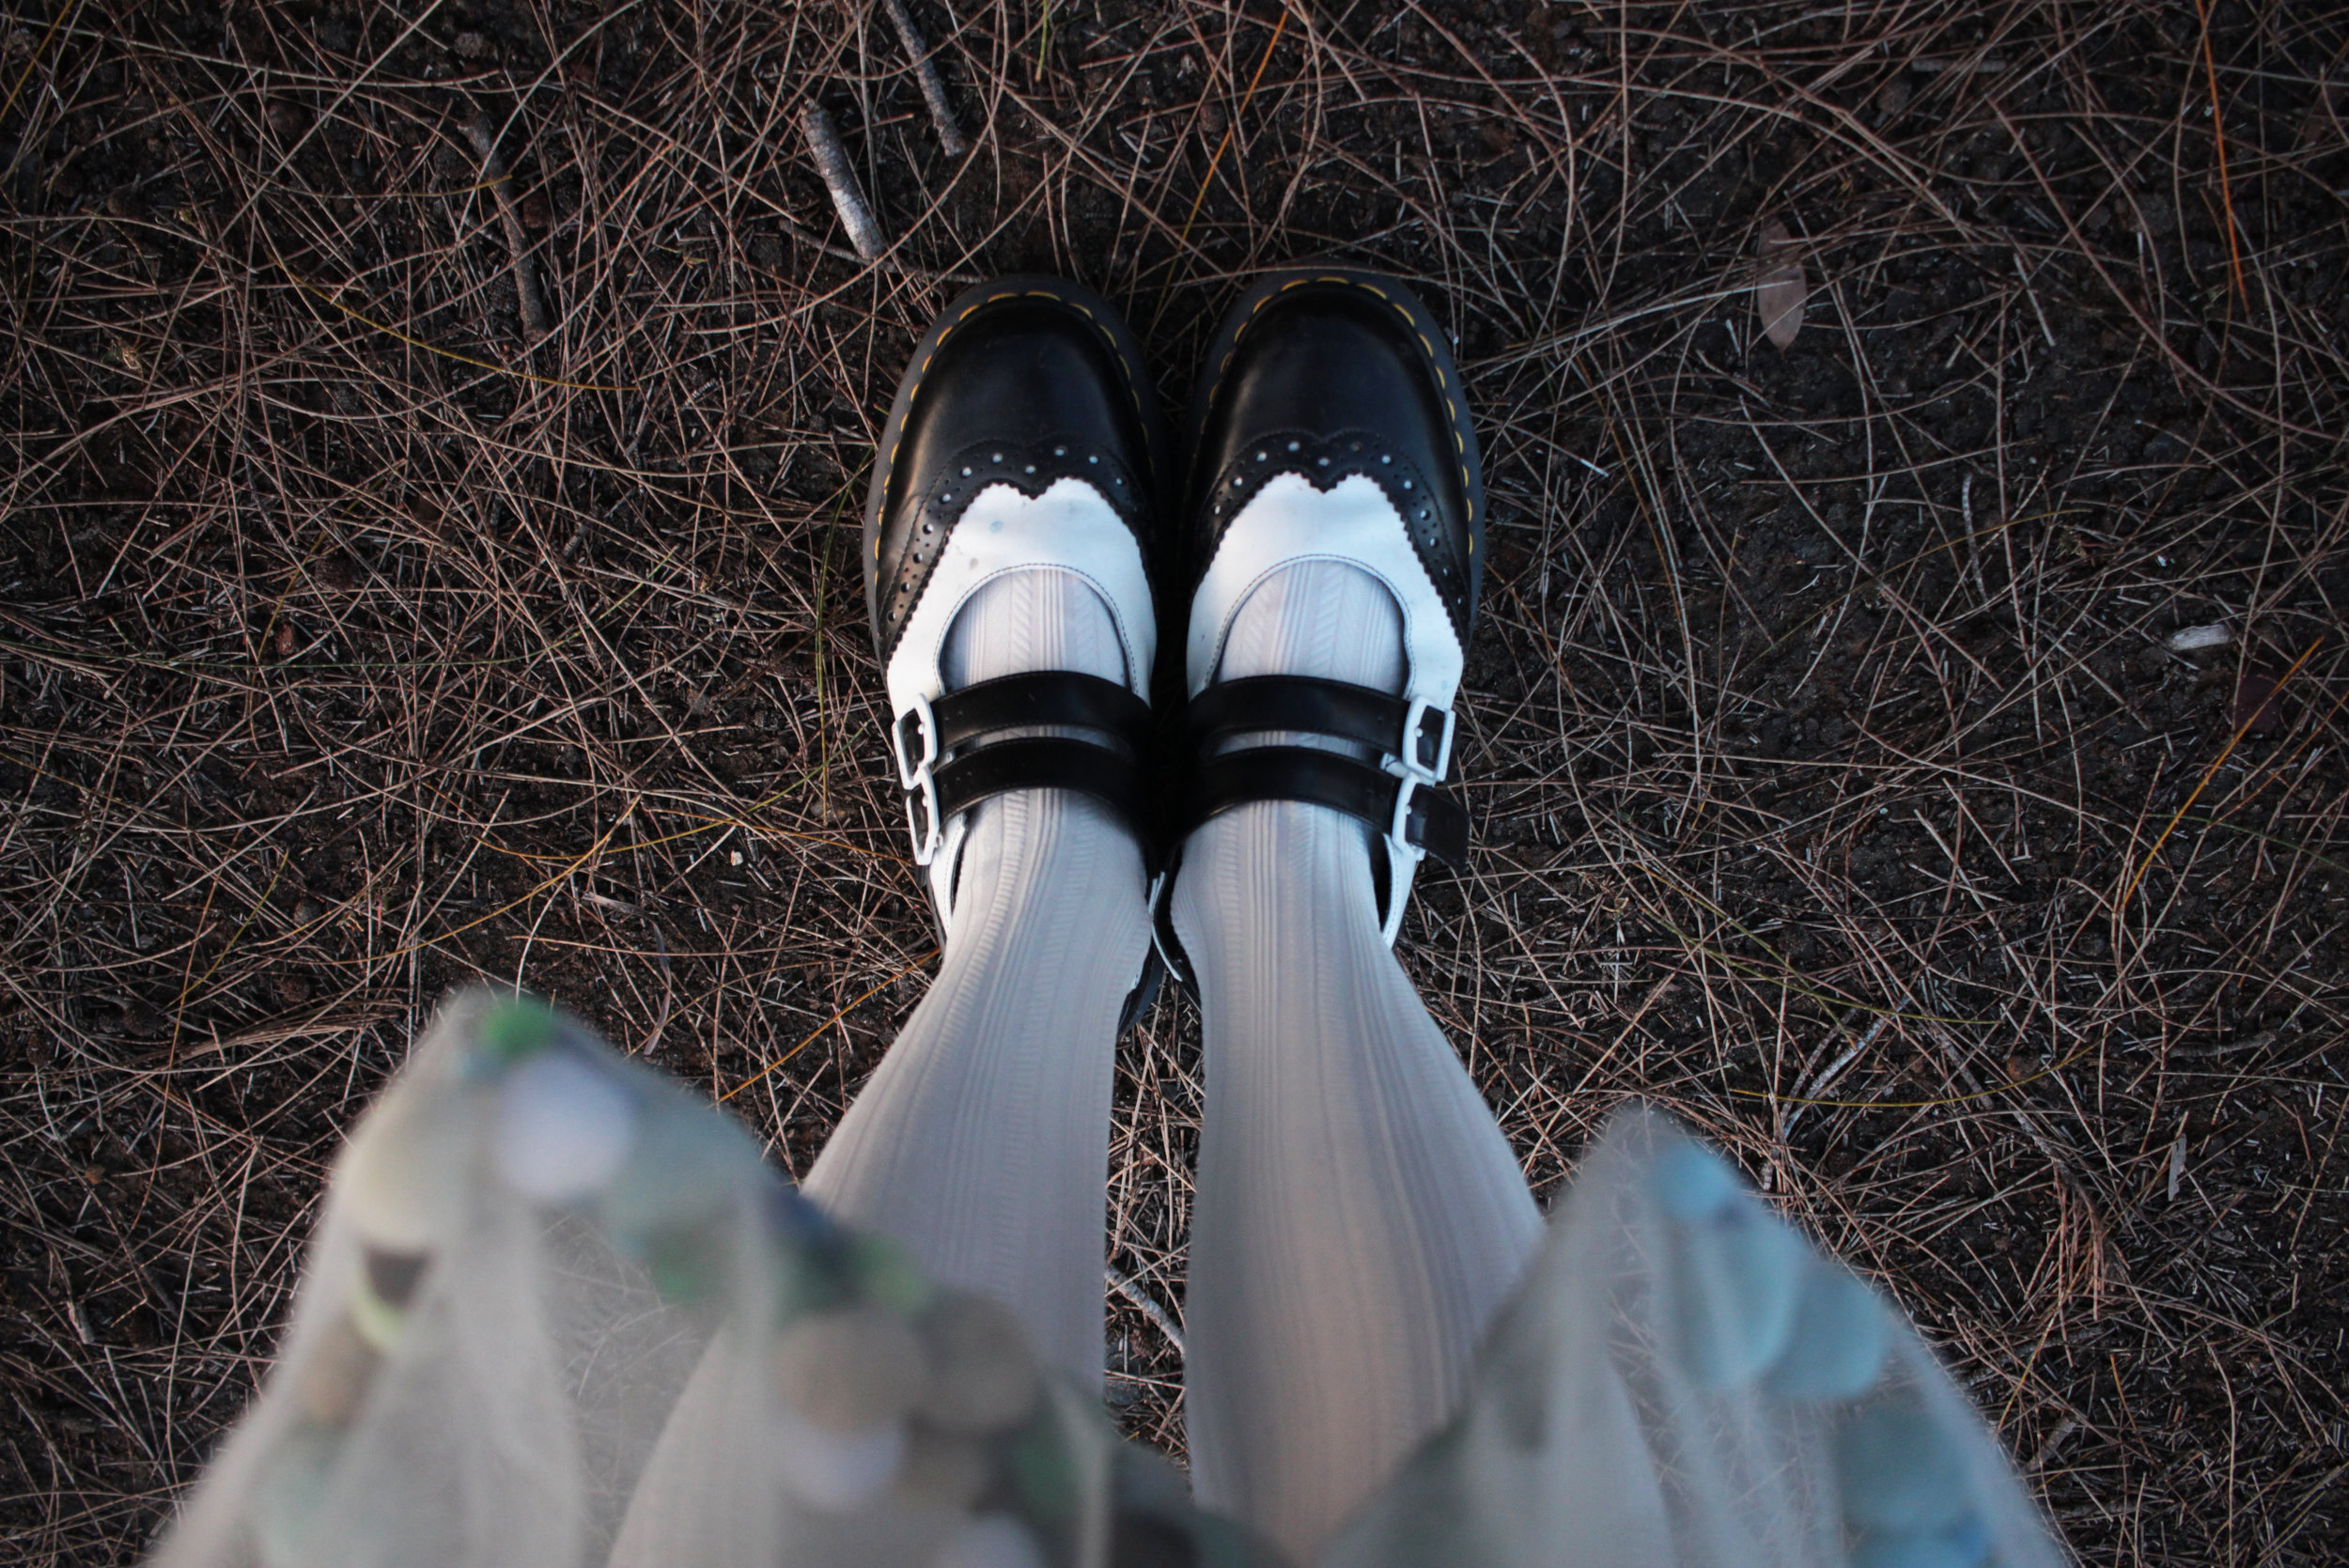 Sshoes.jpg